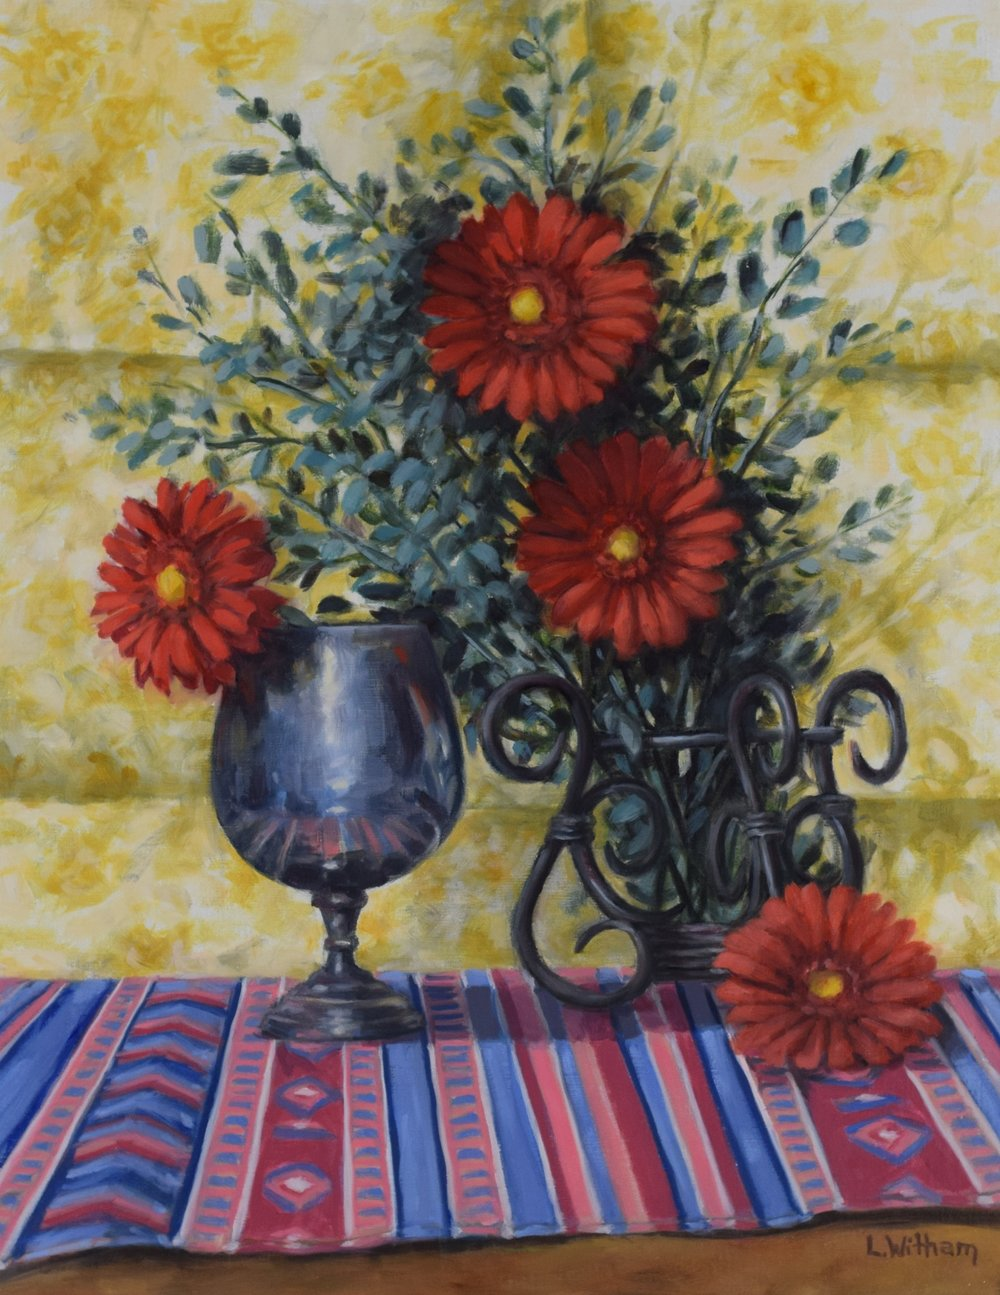 Scarlet Daisies (2018)  Oil on linen, 14x18